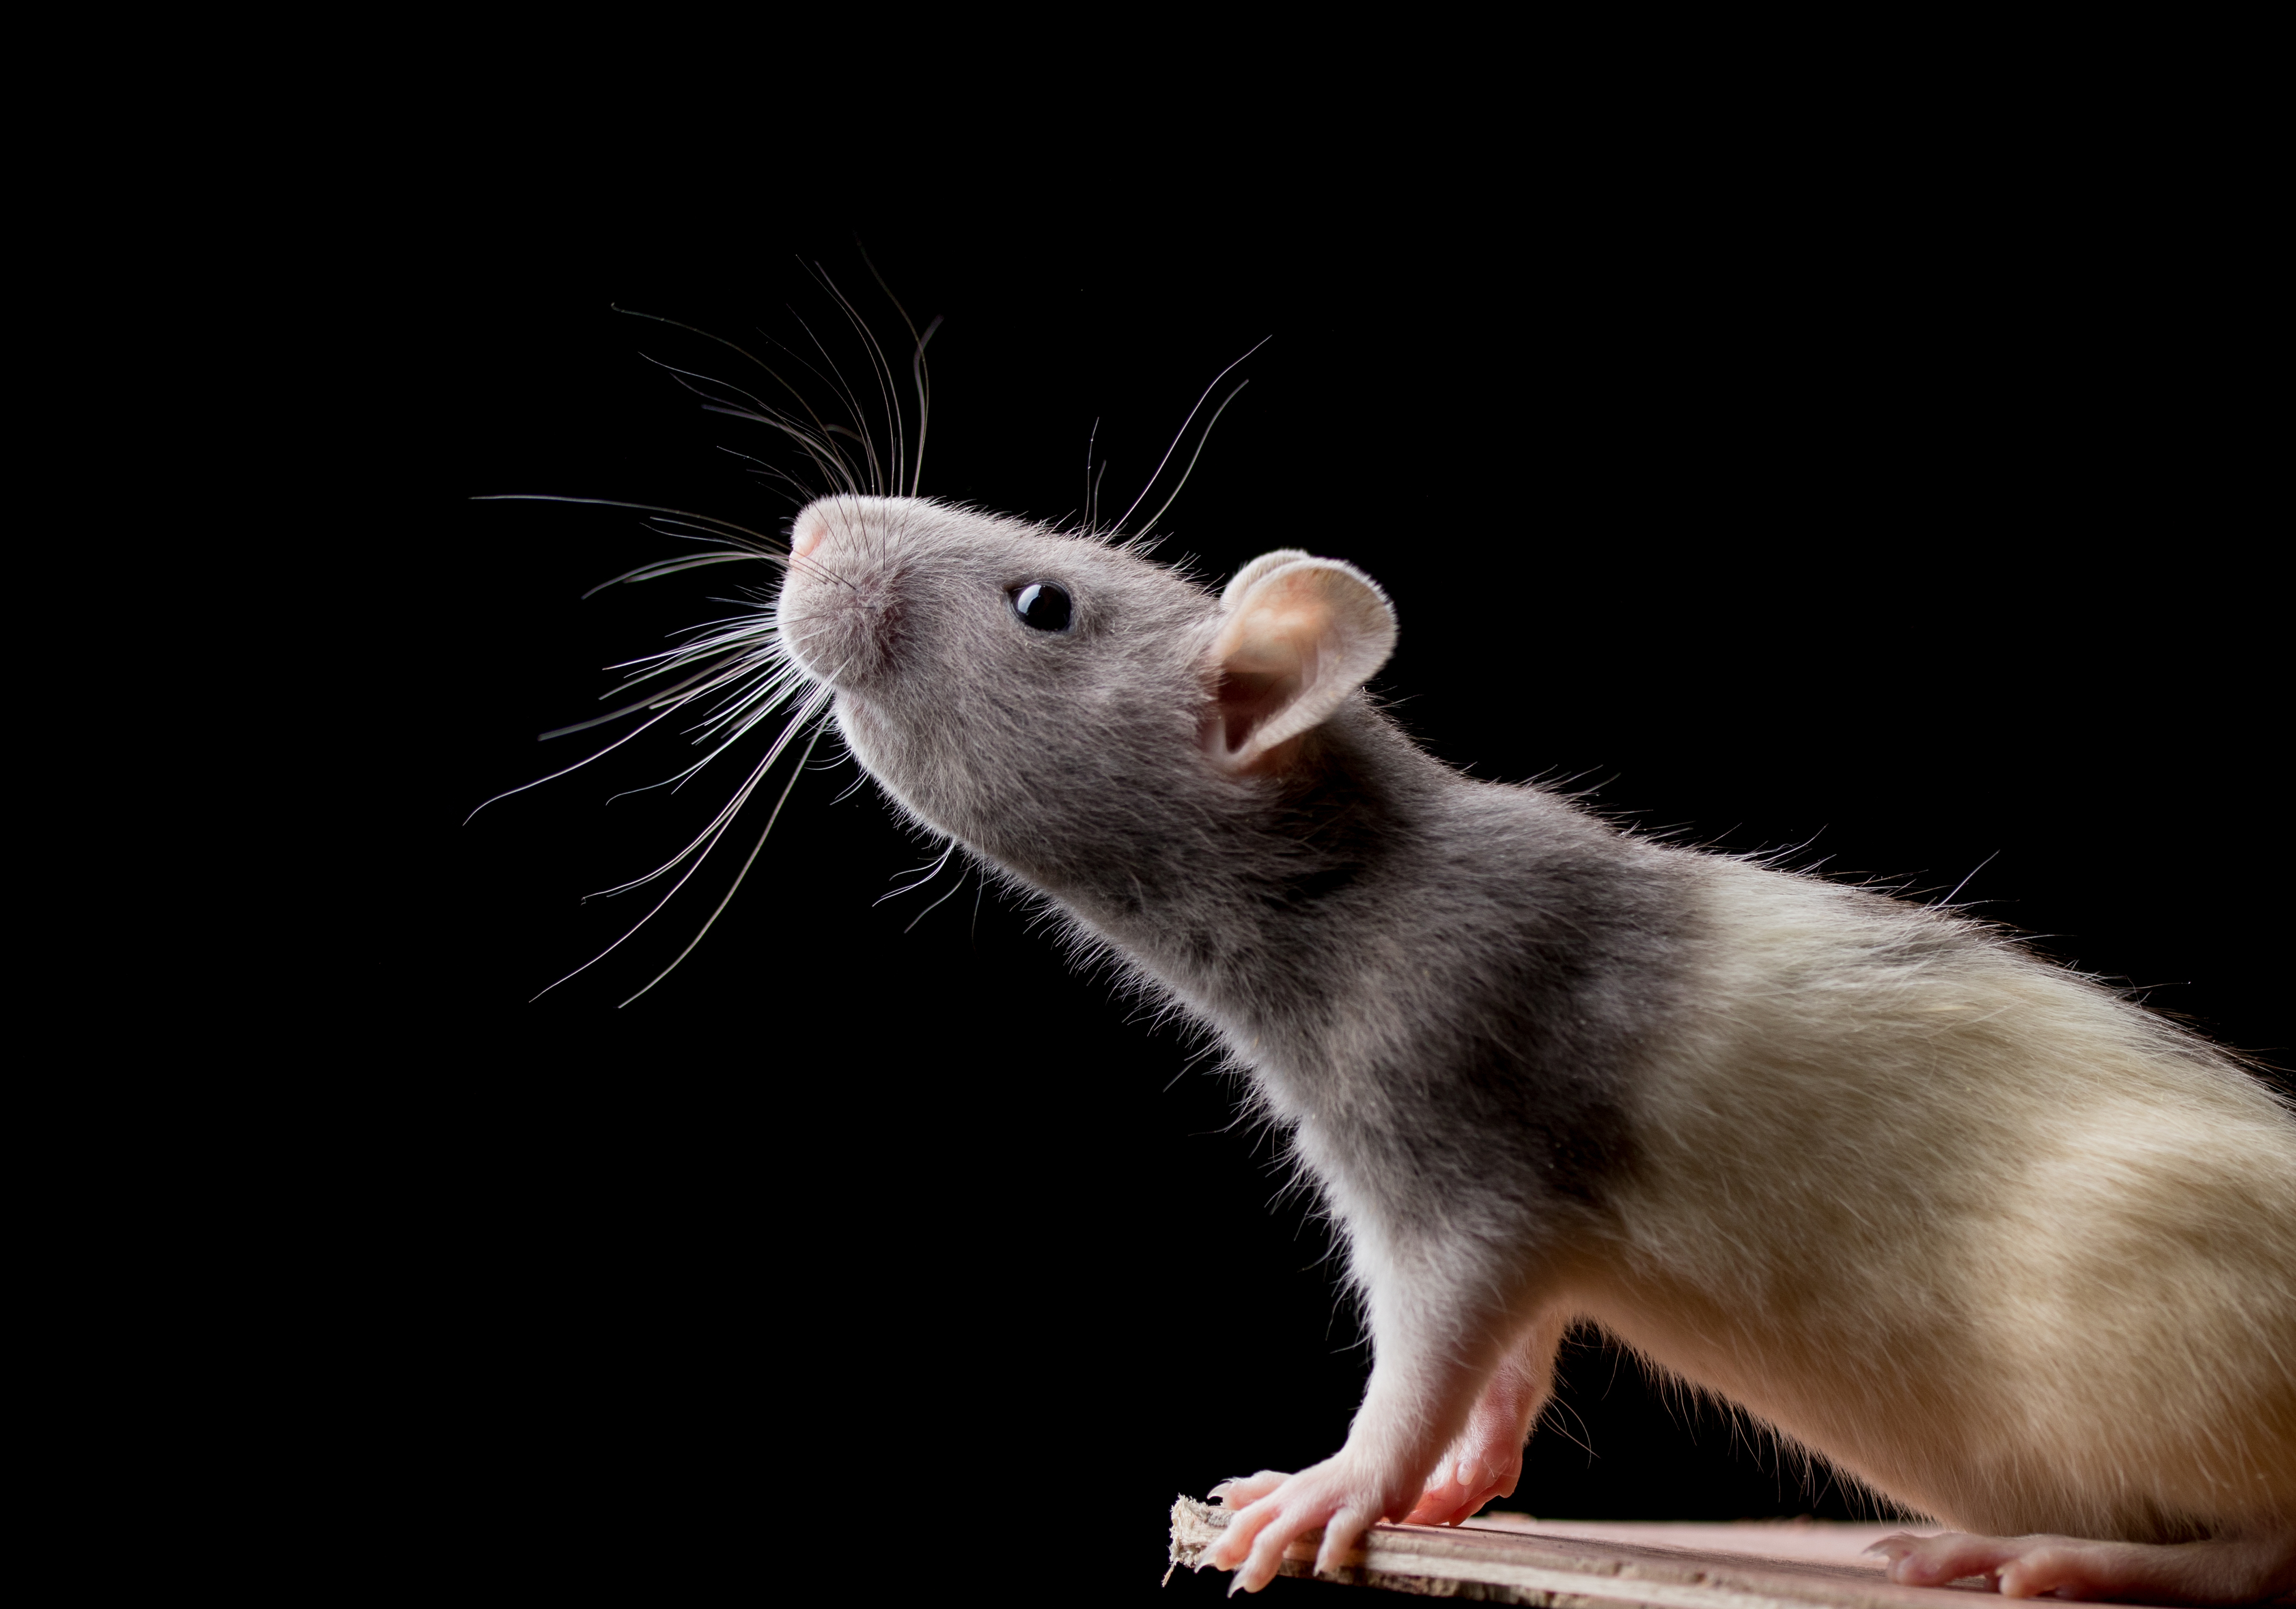 Do Sound Repellent Devices Really Keep Rodents Away? | Home